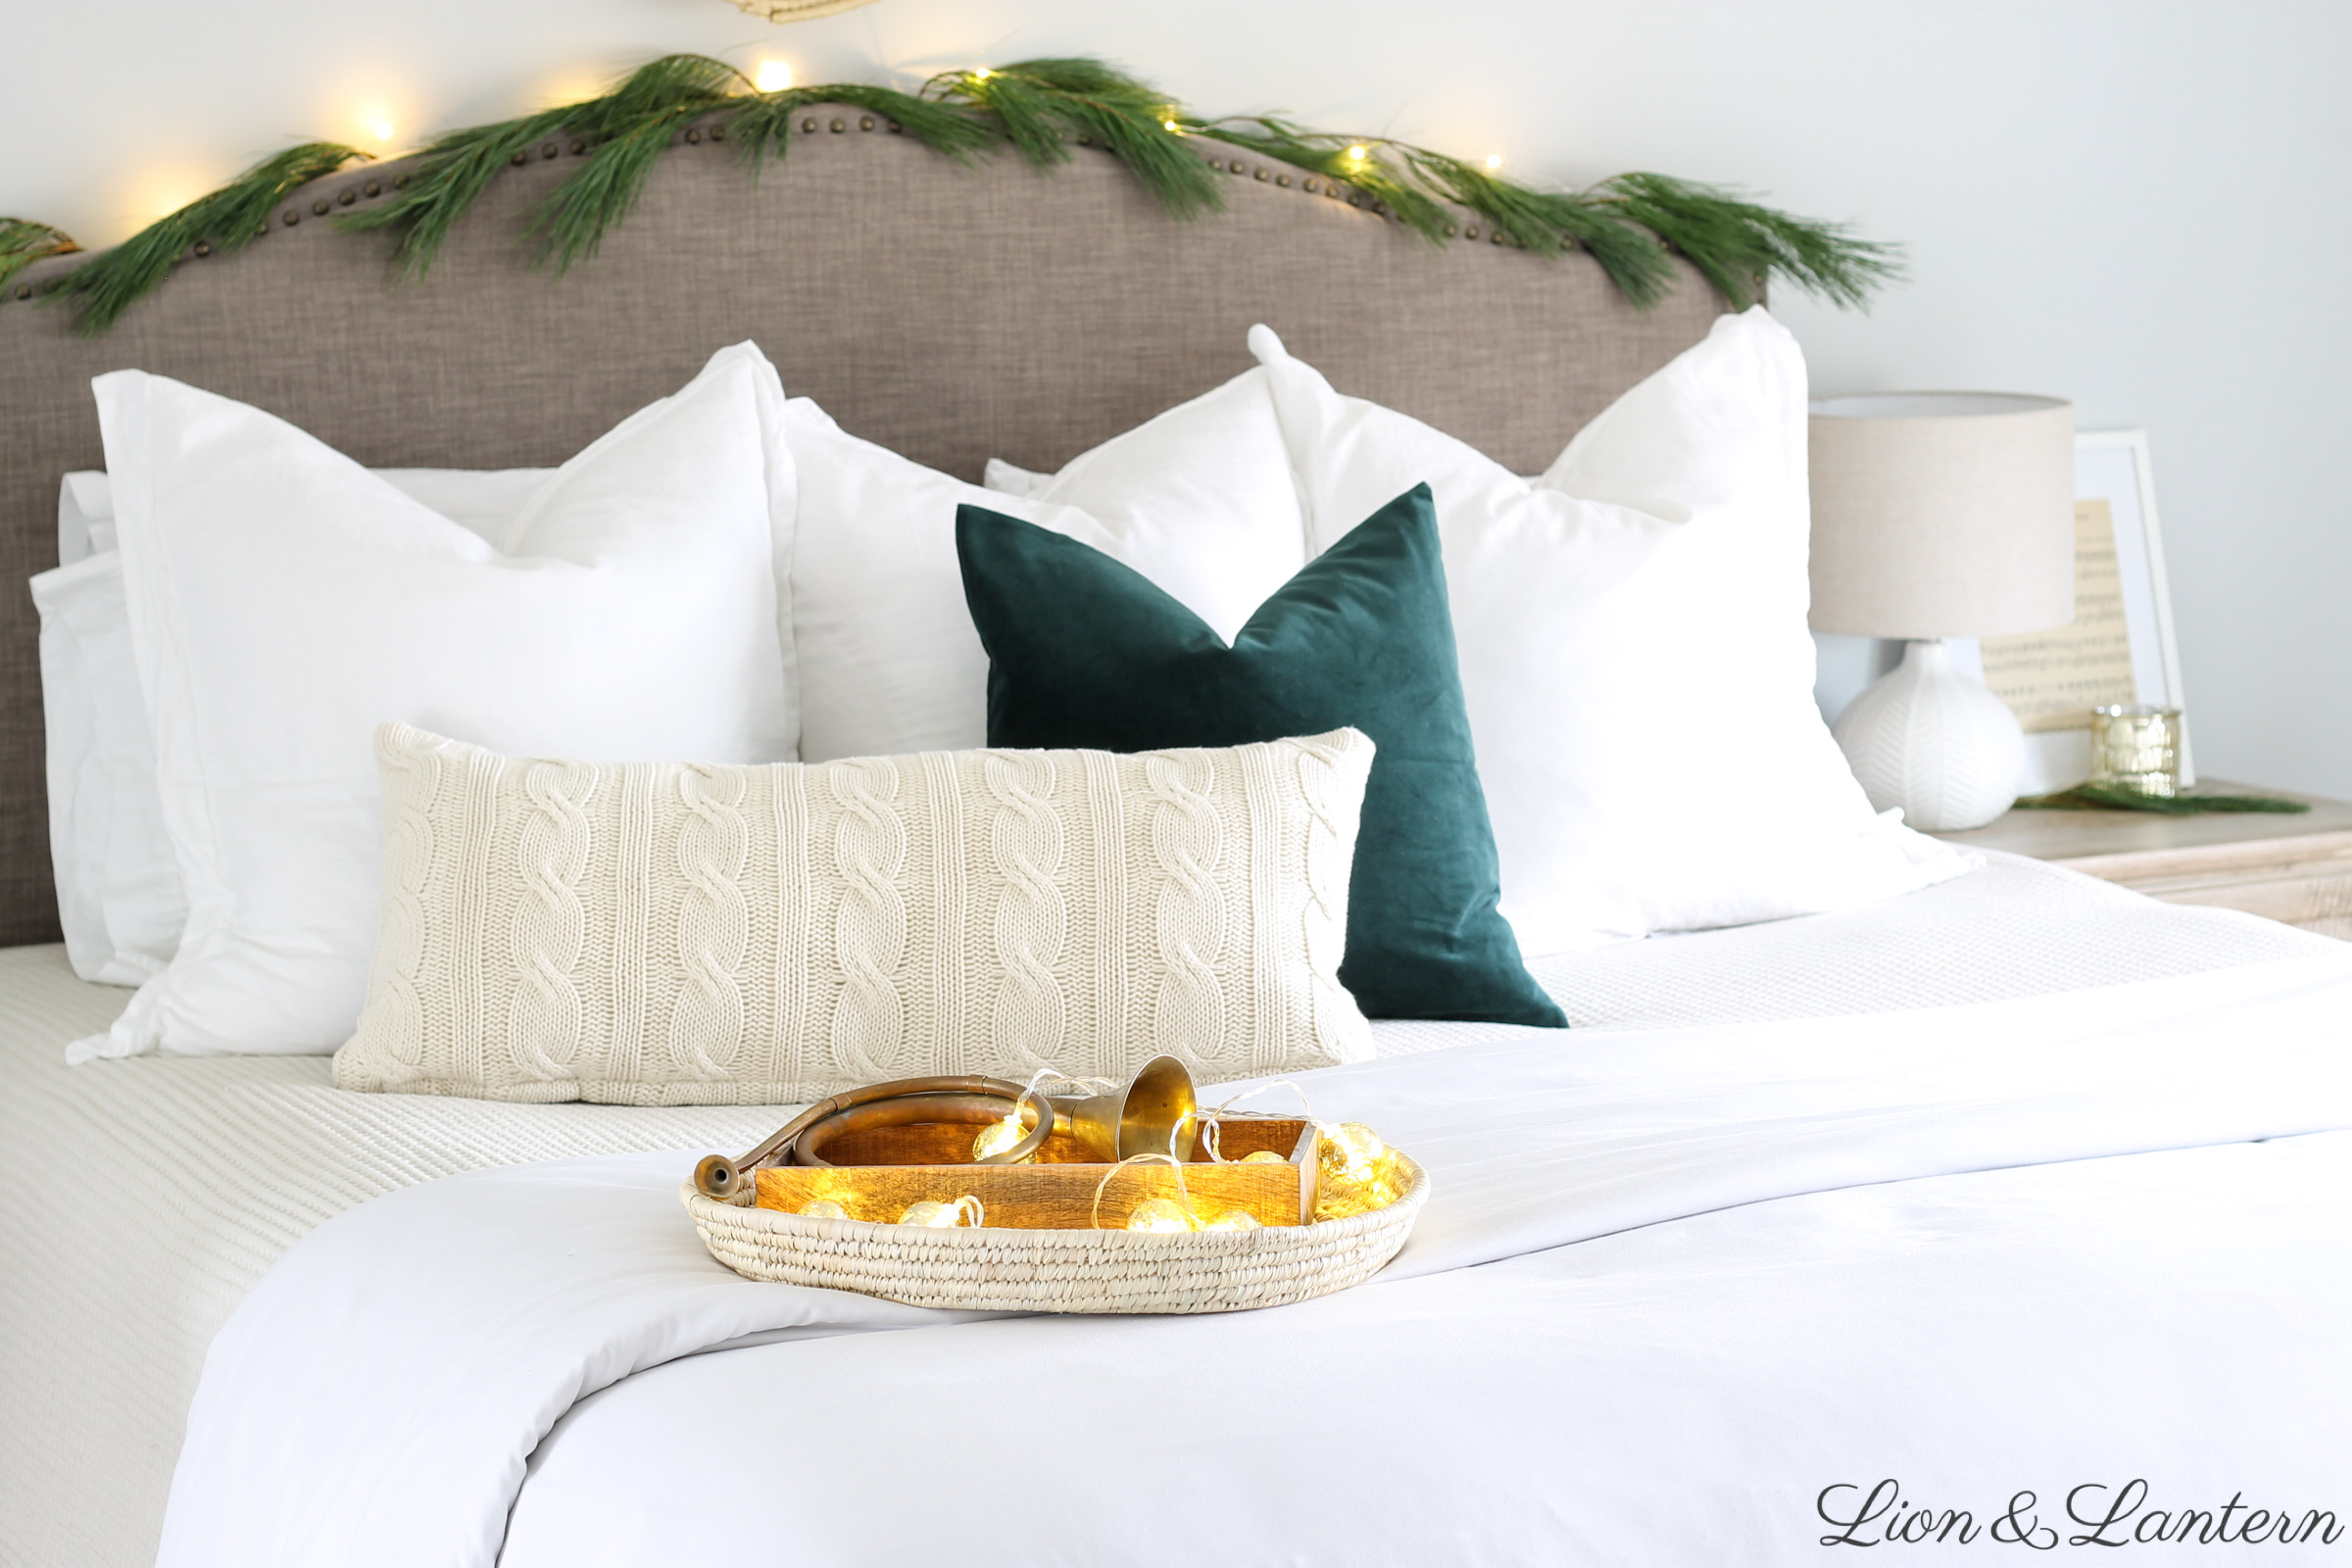 Cozy Christmas Bedroom Decor at LionAndLantern.com | modern Christmas, Scandinavian Christmas, minimalist, modern farmhouse style, simple decor, pine garland, velvet pillow